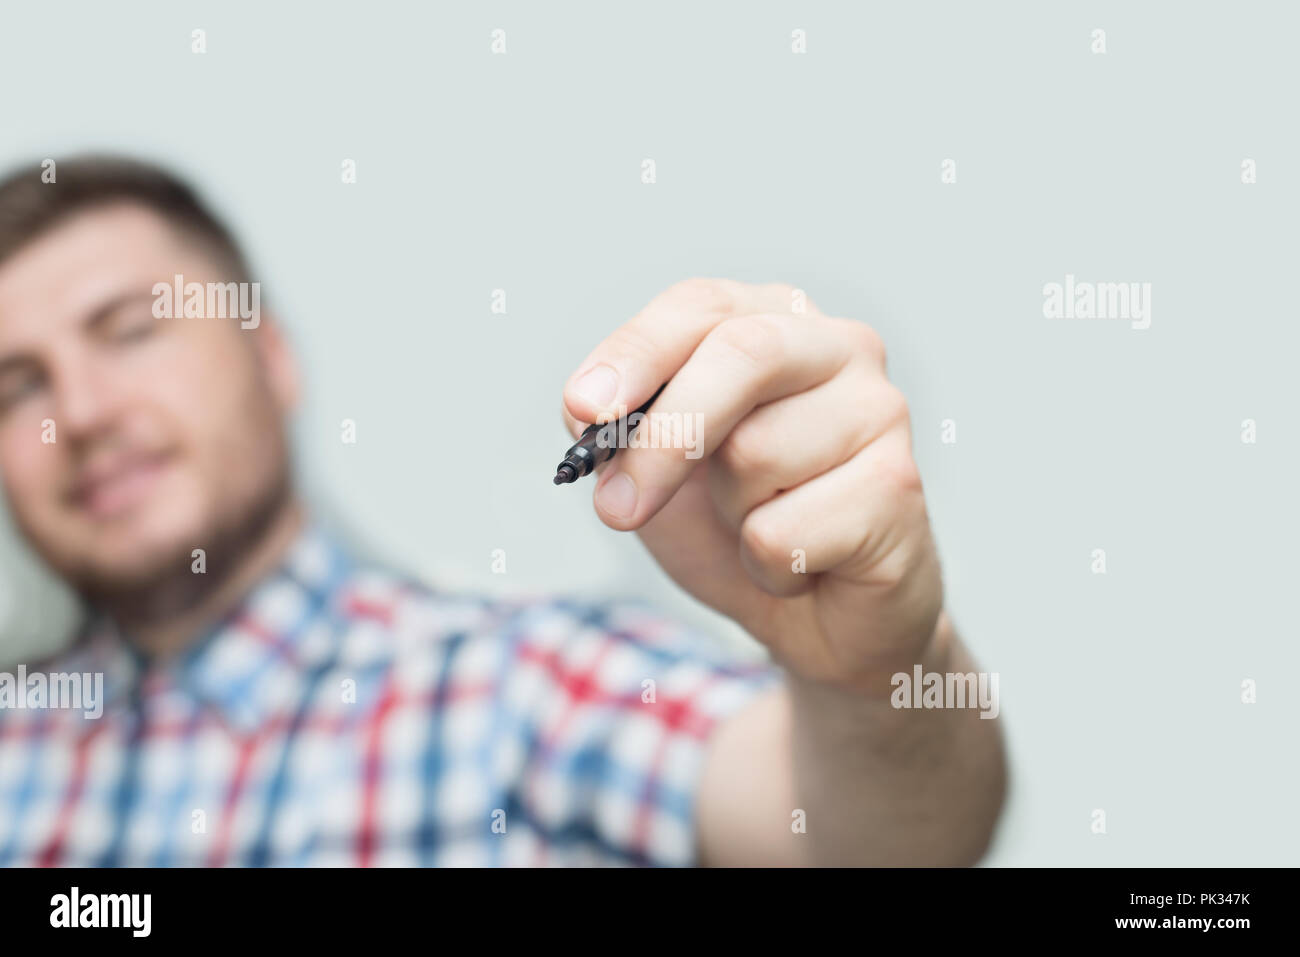 Template - businessman draws or write a with marker on the glass wall or screen - Stock Image